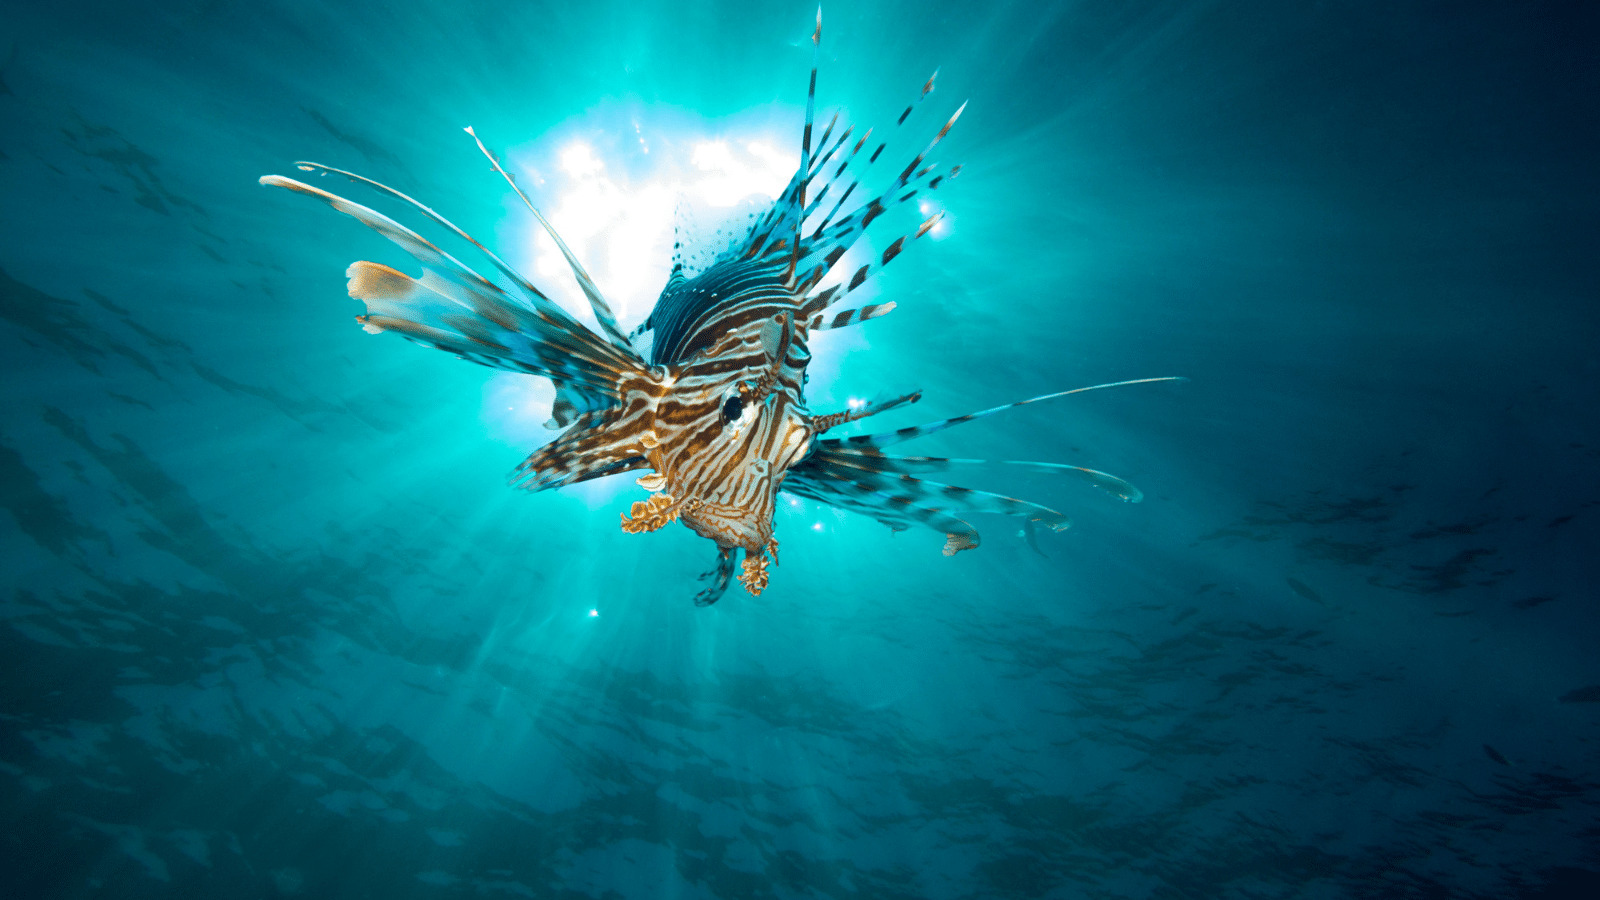 Read more about the article Beneath The Waves : Shedding Light On The Beauty And Wonder Of The Ocean